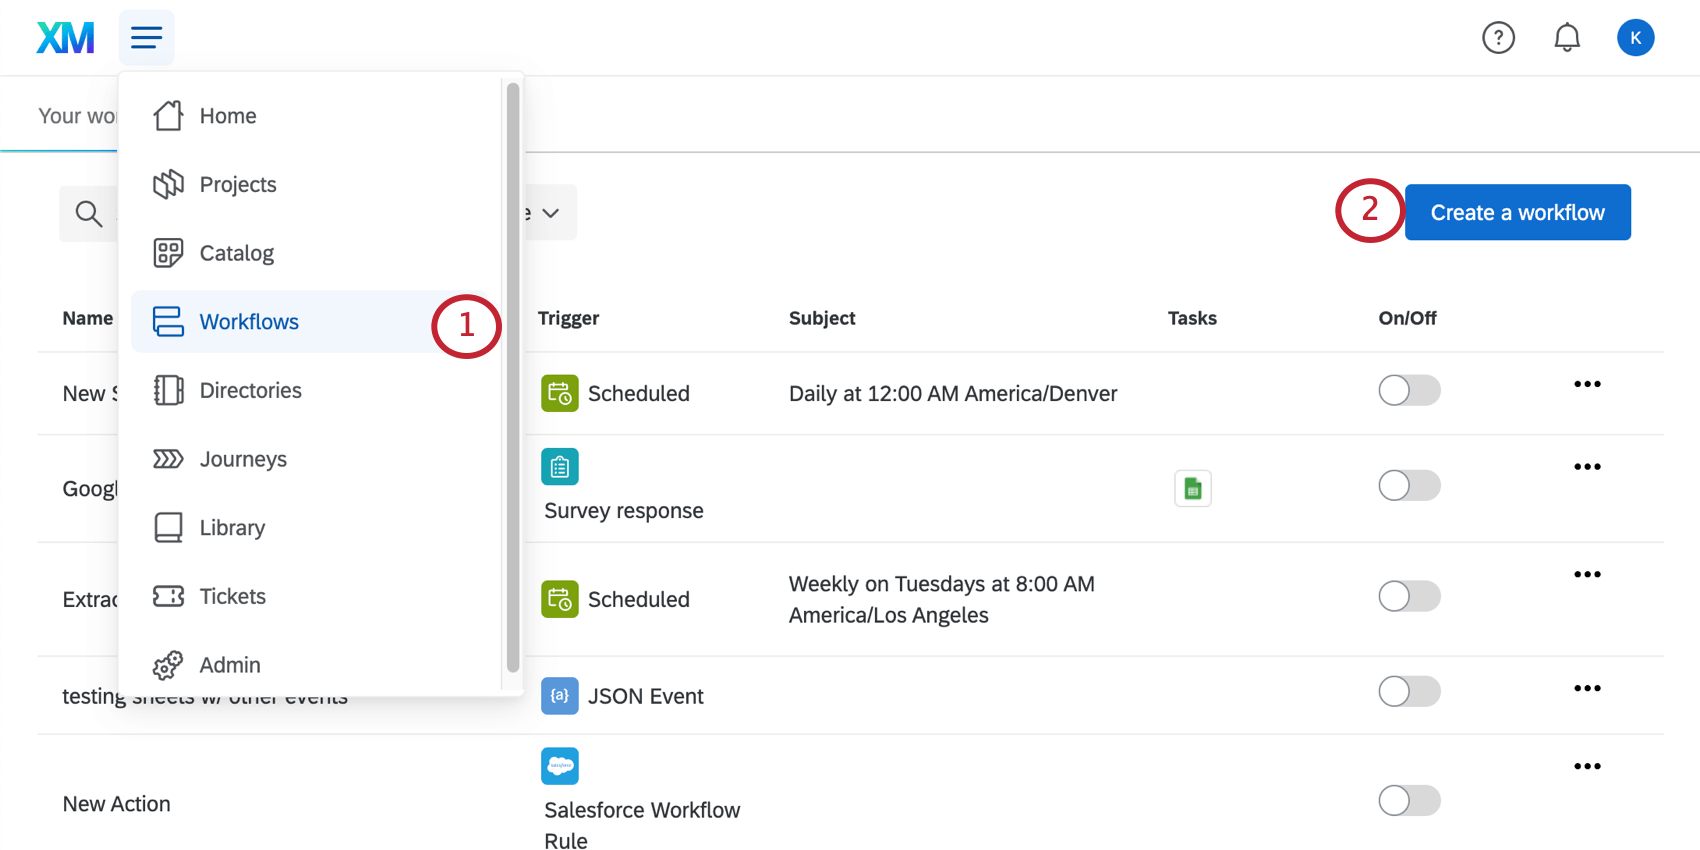 choosing workflows in global navigation and then clicking create a workflow